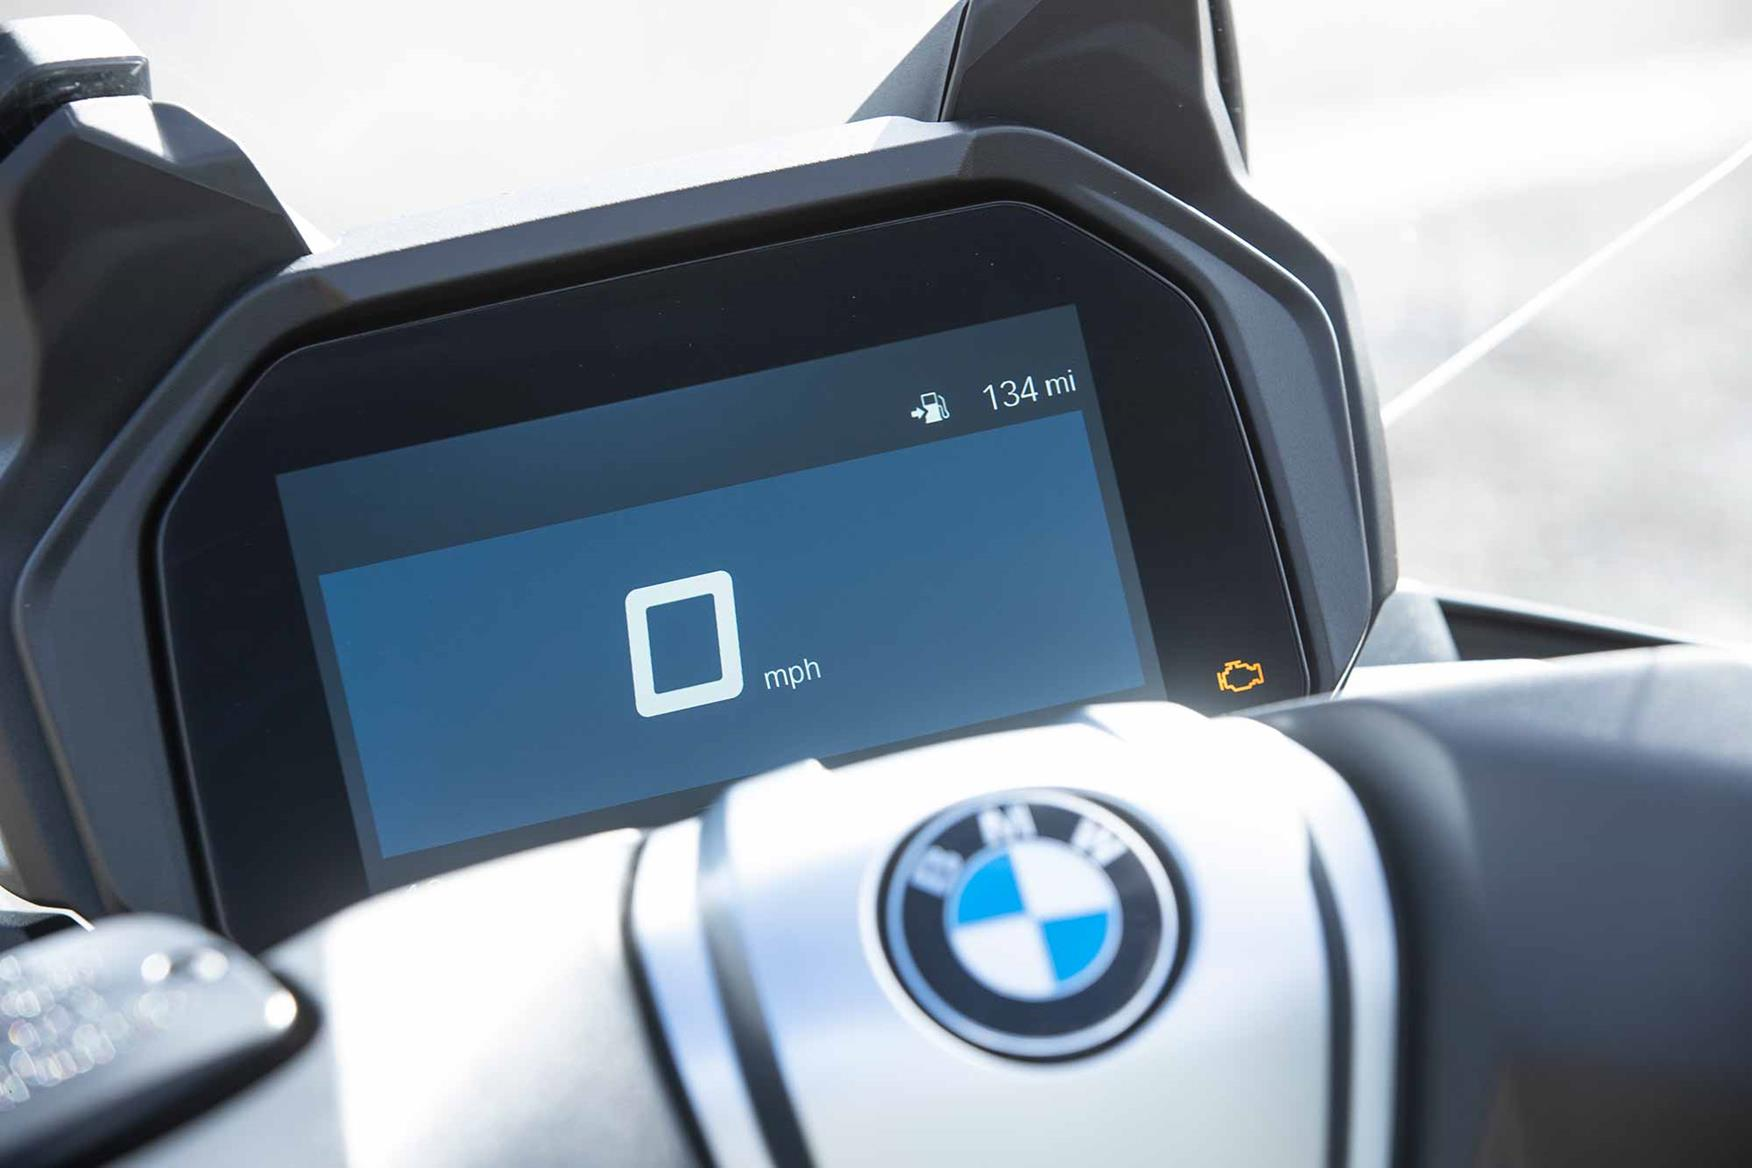 The BMW C400GT gets a TFT dash